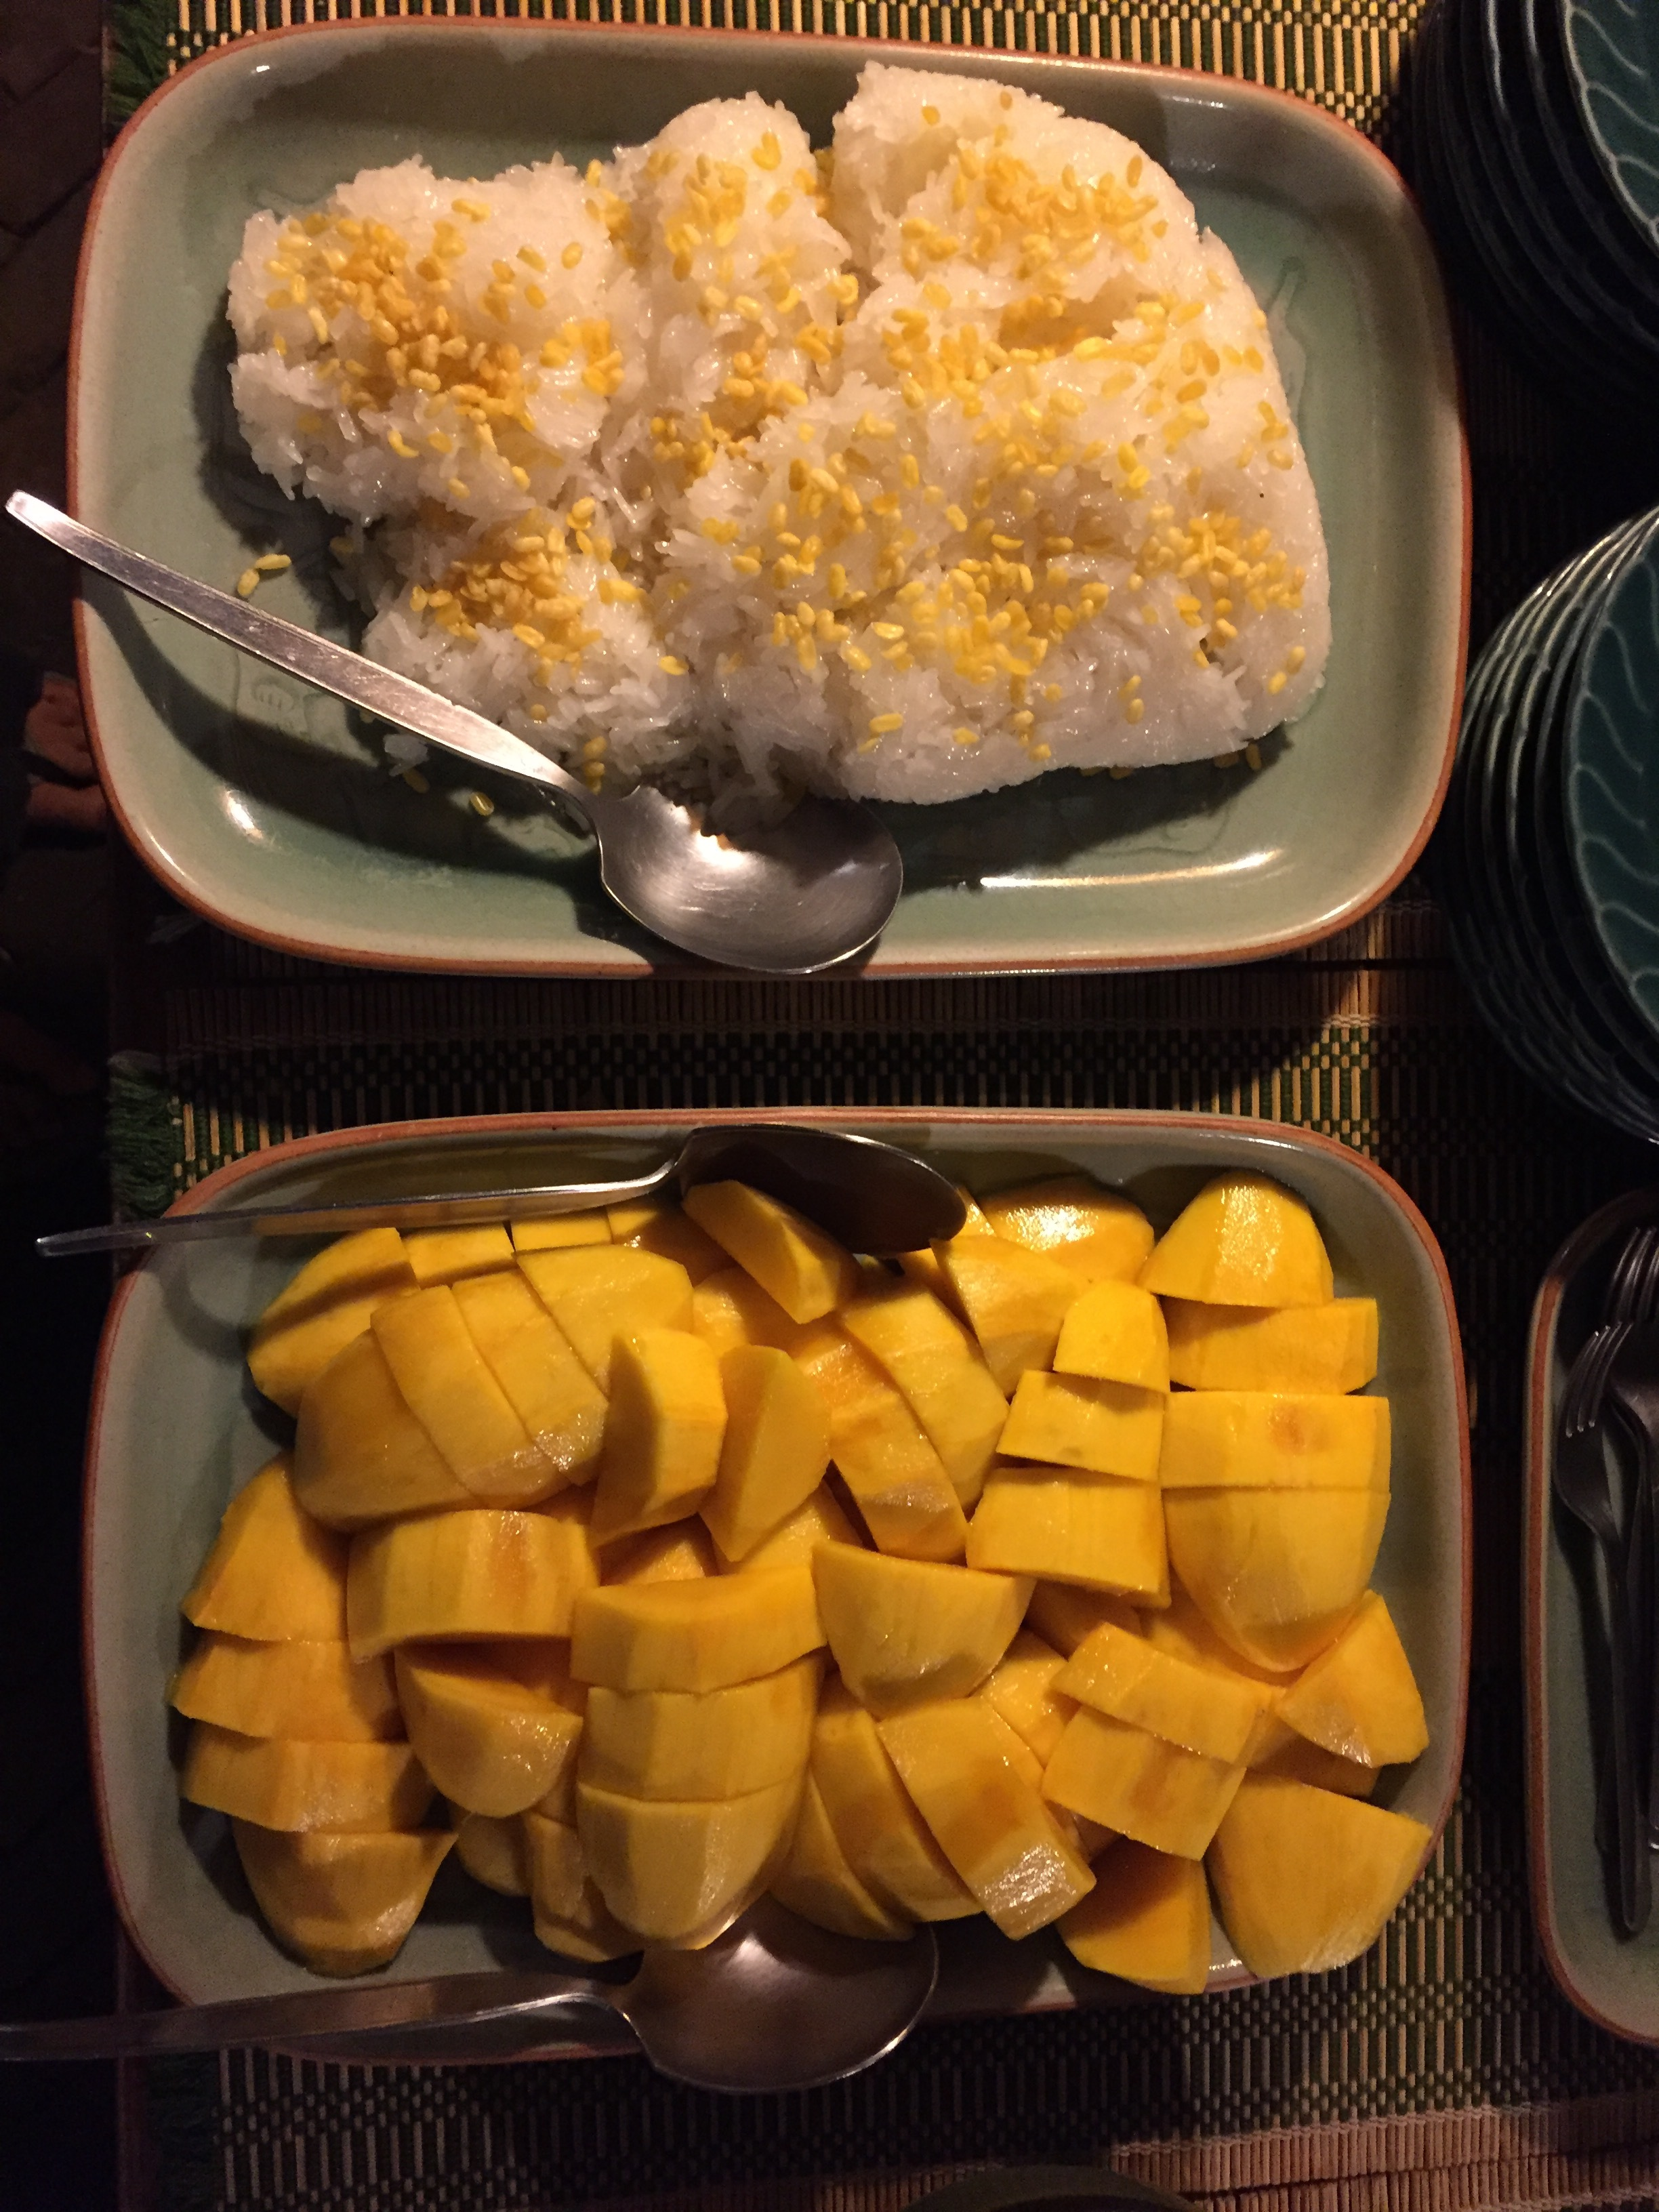 Mangoes picked straight from the tree and sticky rice topped with coconut cream and toasted nuts